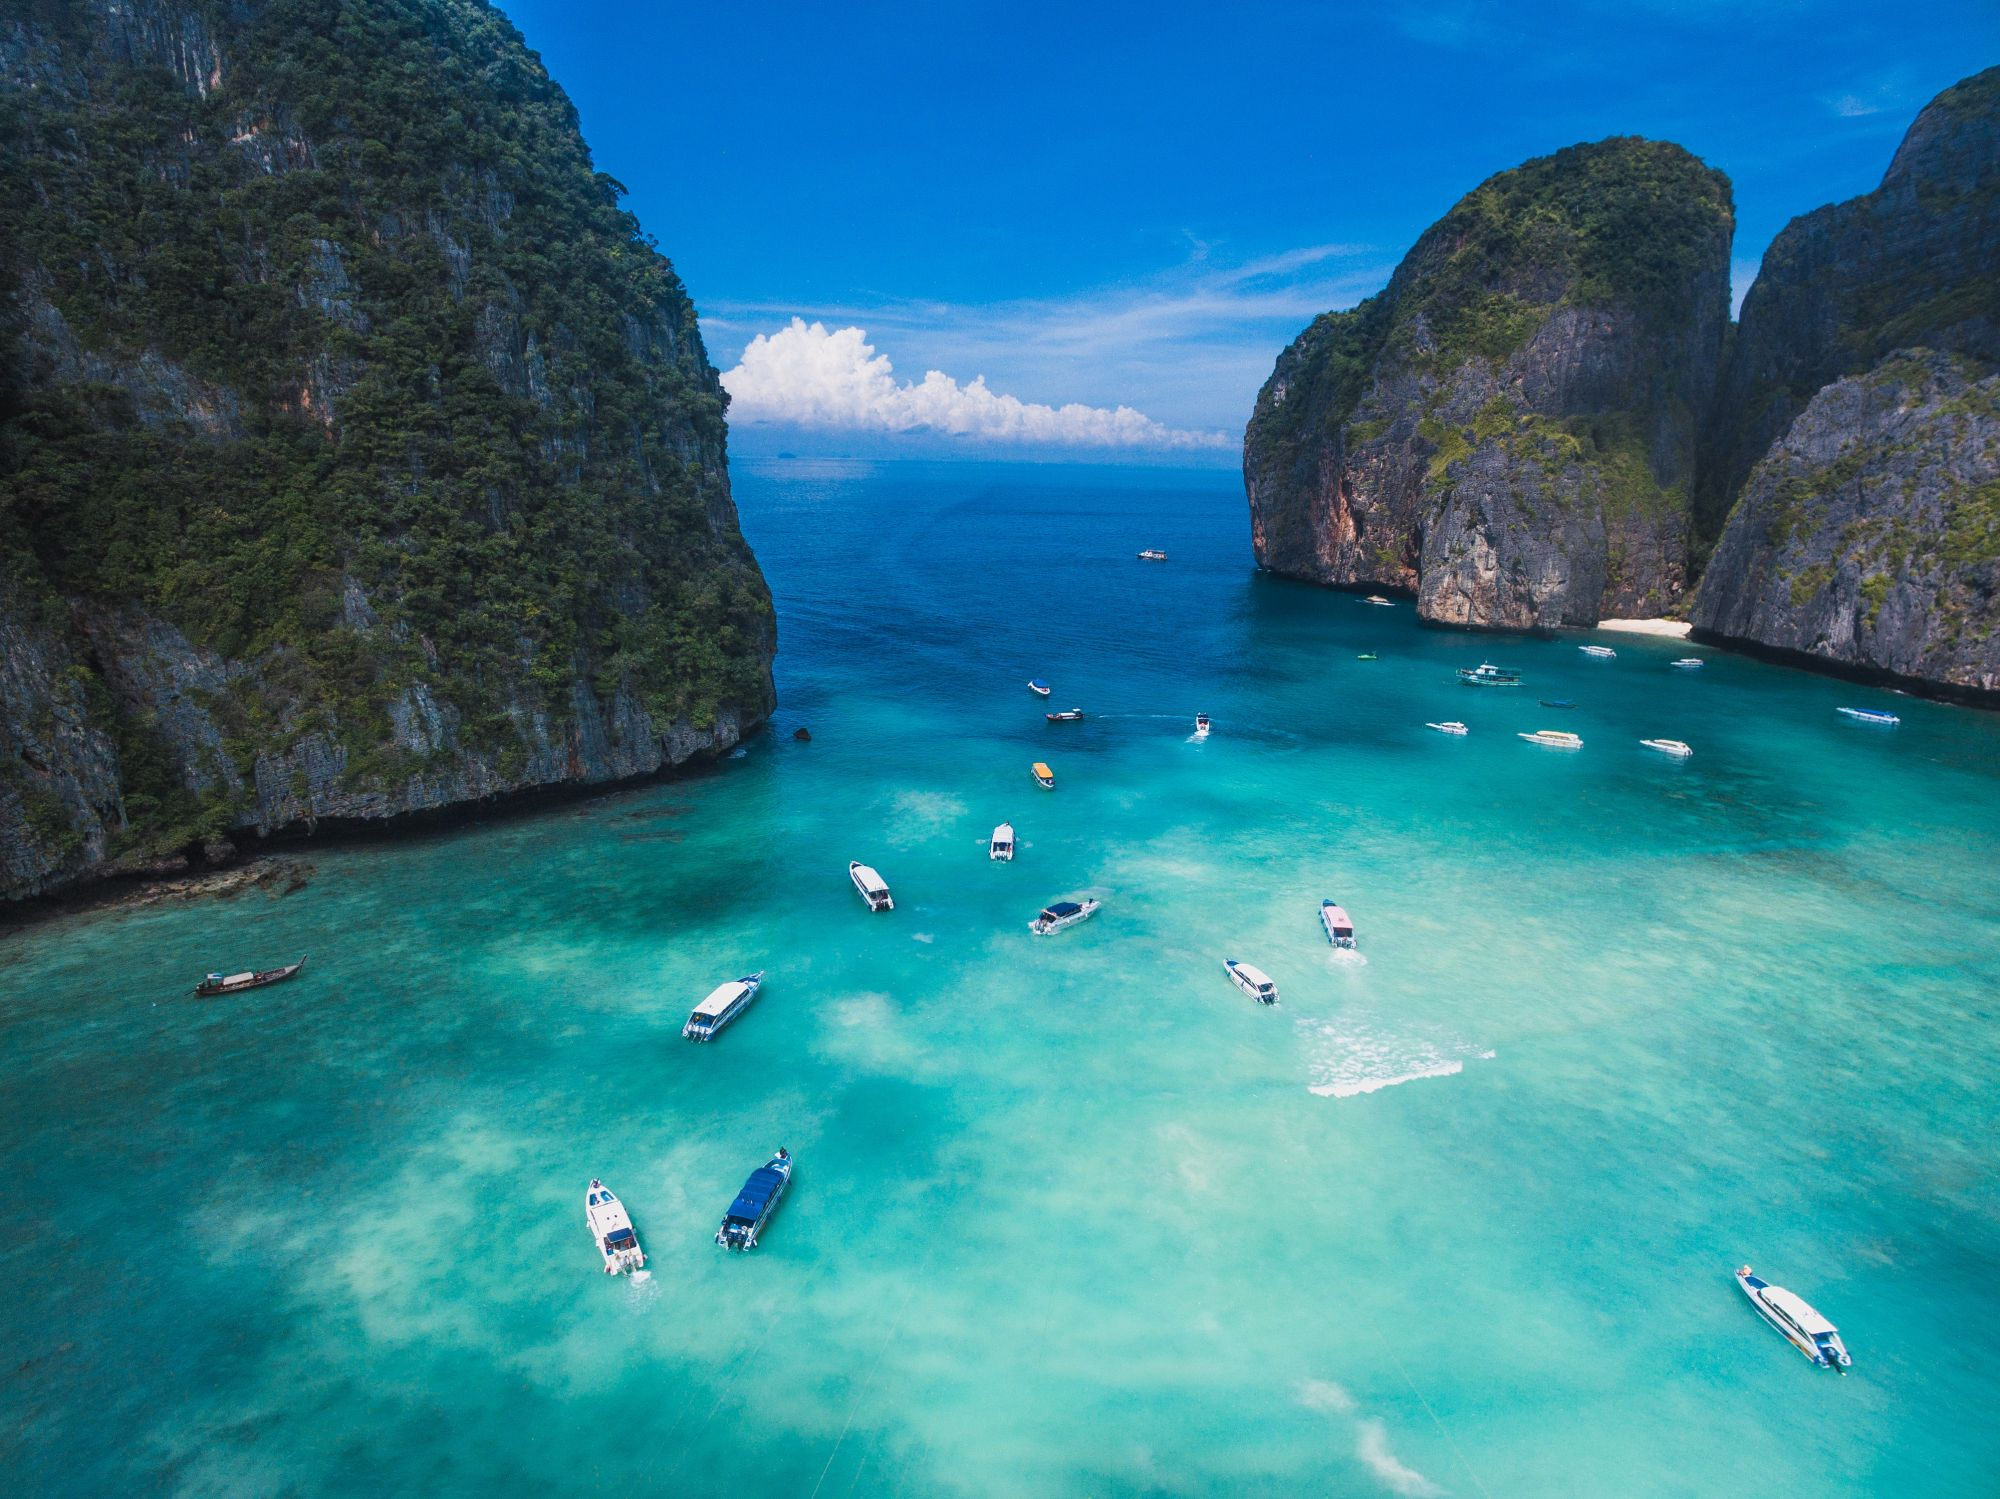 Golf Resorts, Yacht Quarantines: How Thailand Is Attracting Travellers During Covid-19